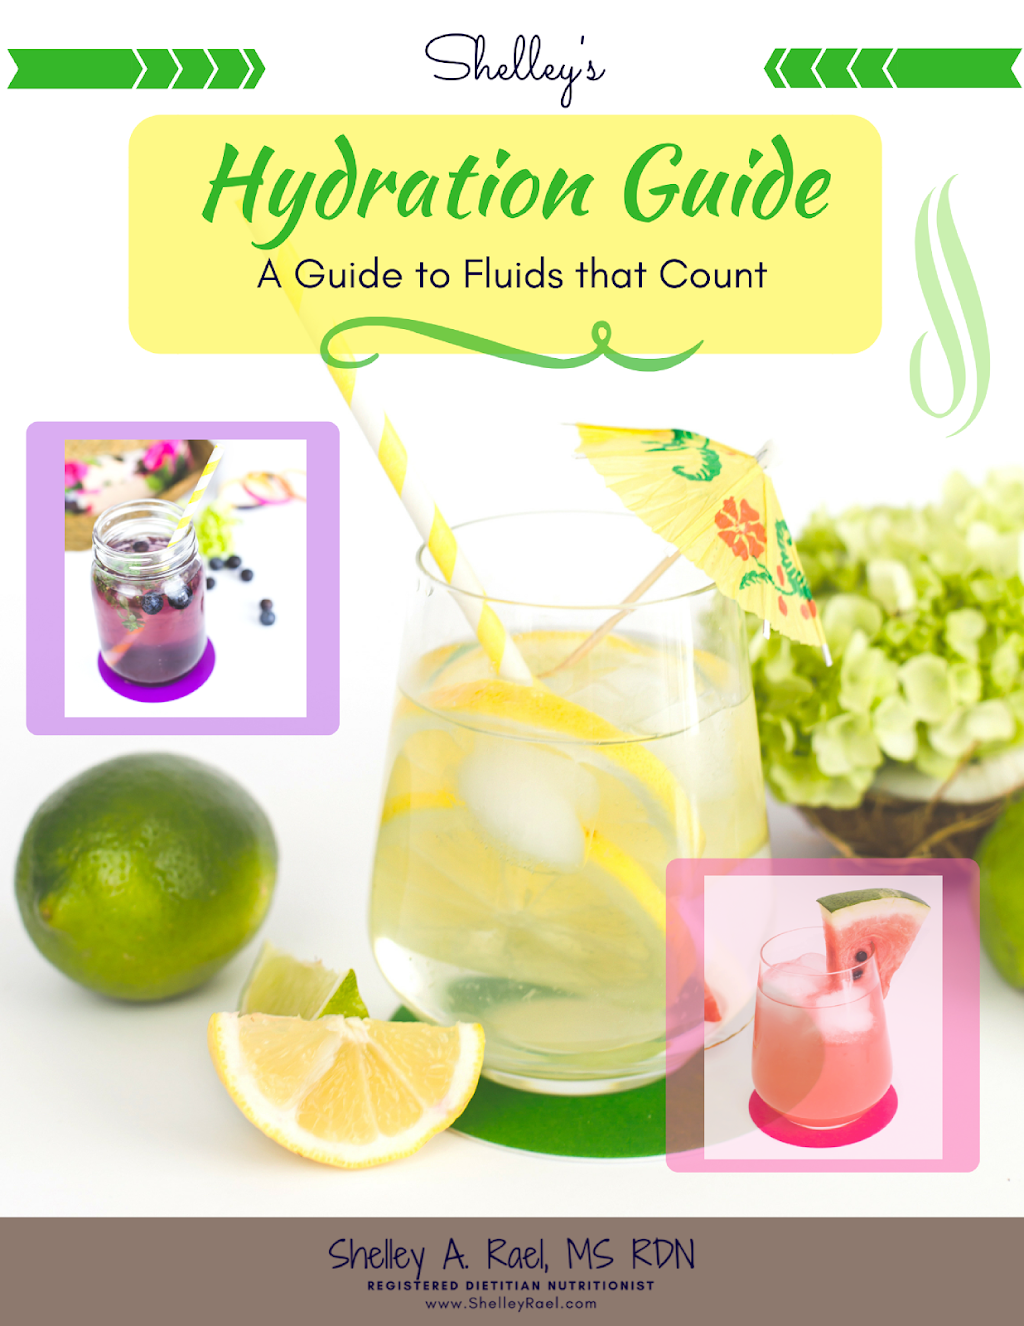 Hydration Guide - a Guide to Fluids that Count